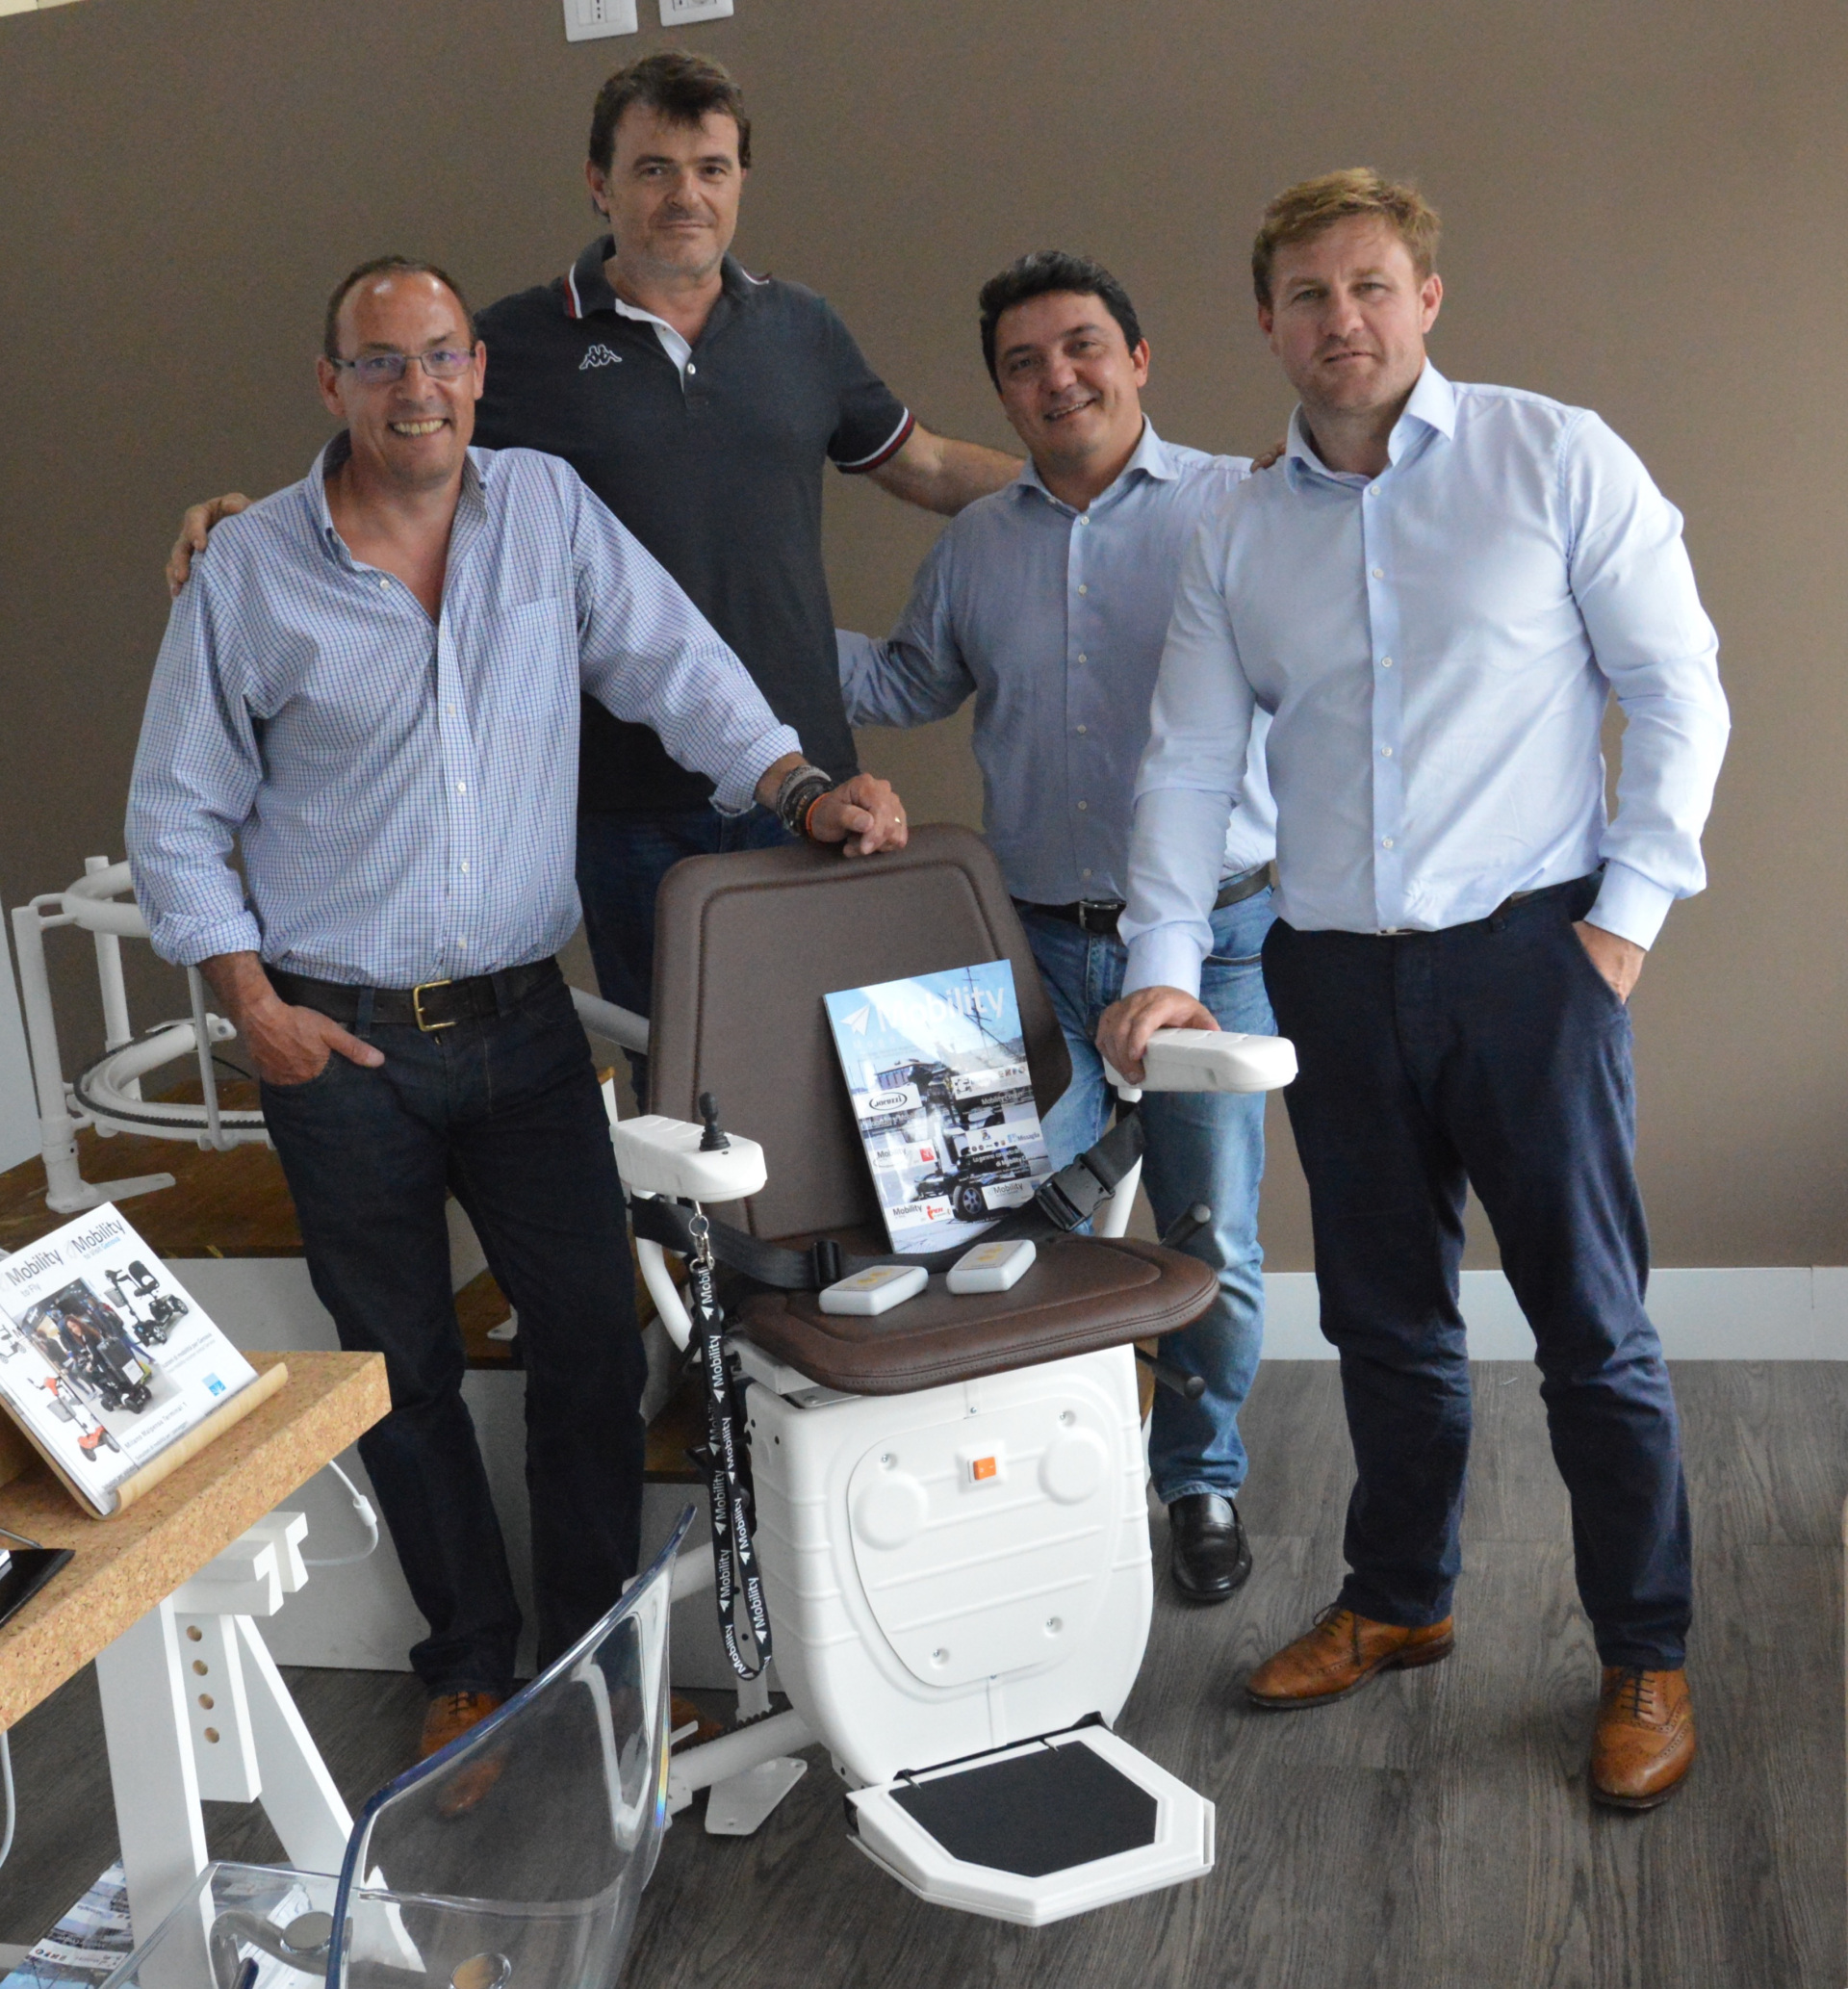 montascale bespoke stairlifts partner ufficale di mobility